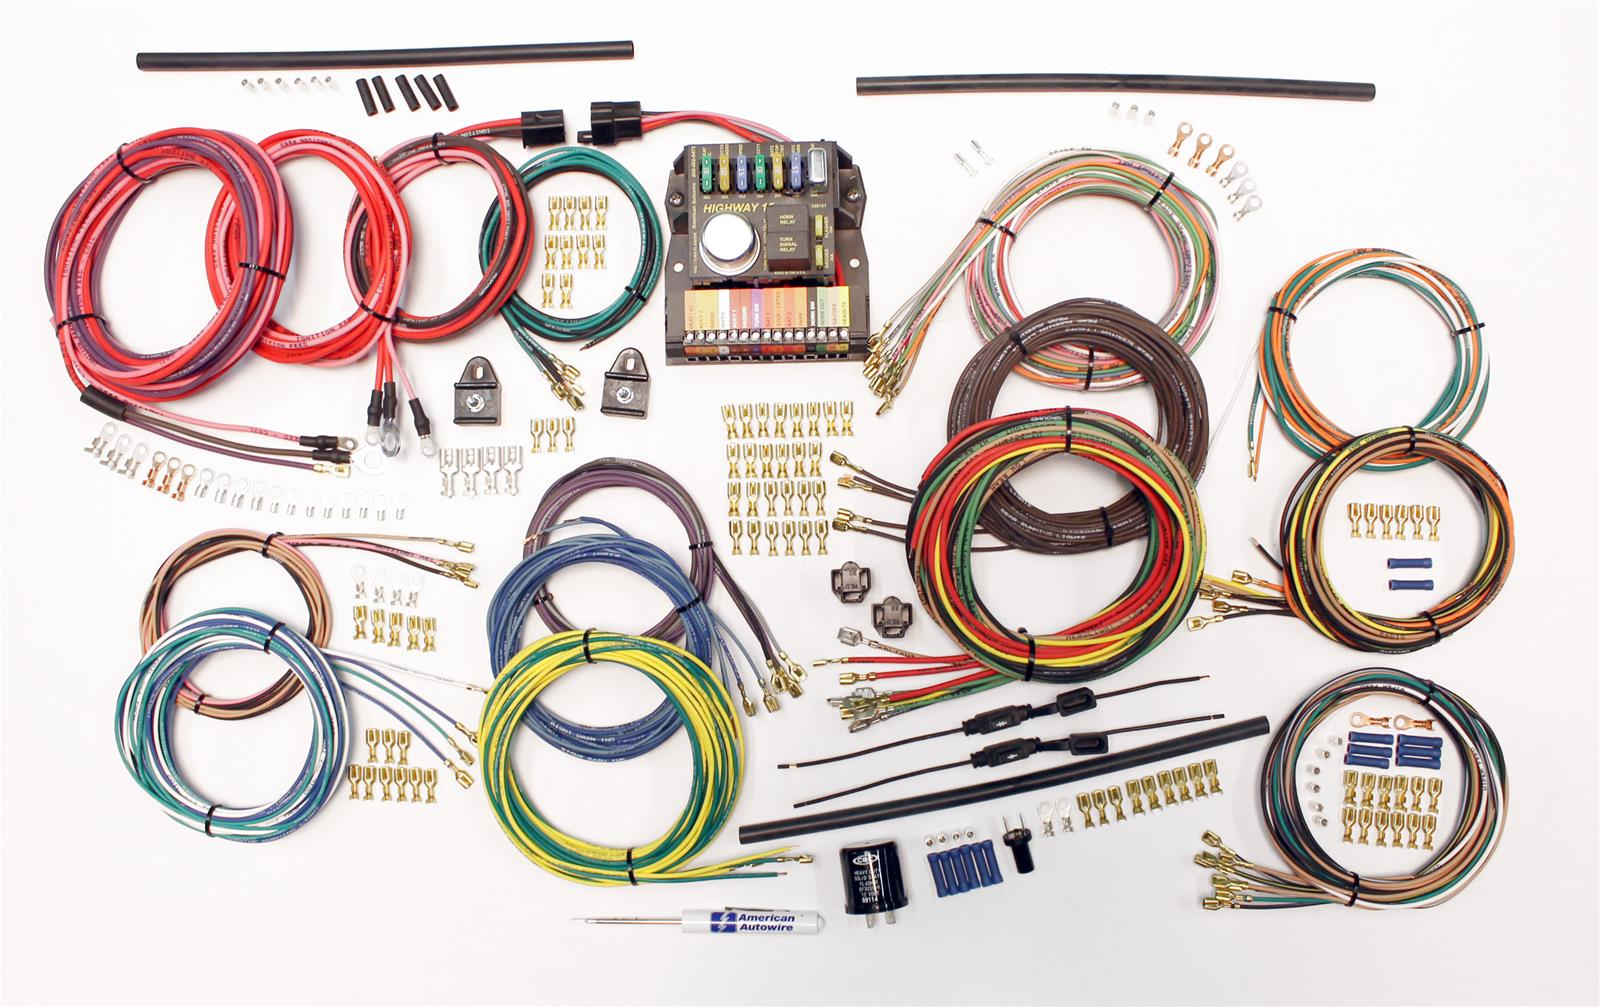 aww 510419_xl american autowire classic update series wiring harness kits 510419 Volkswagen Type 2 Wiring Harness at mifinder.co